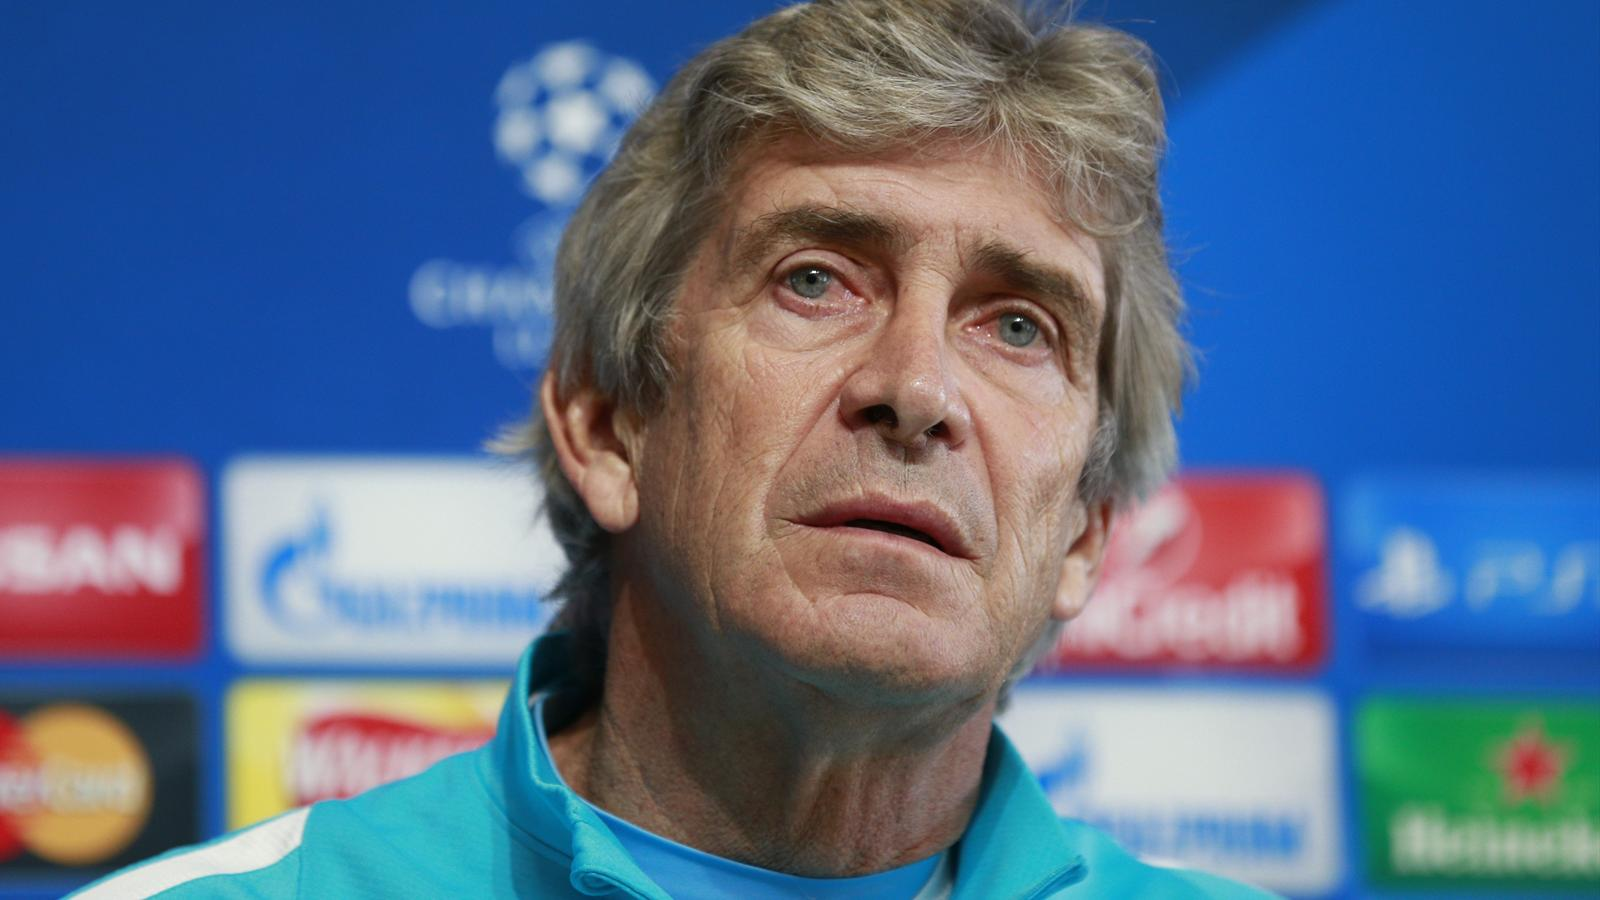 Manchester City manager Manuel Pellegrini during a press conference